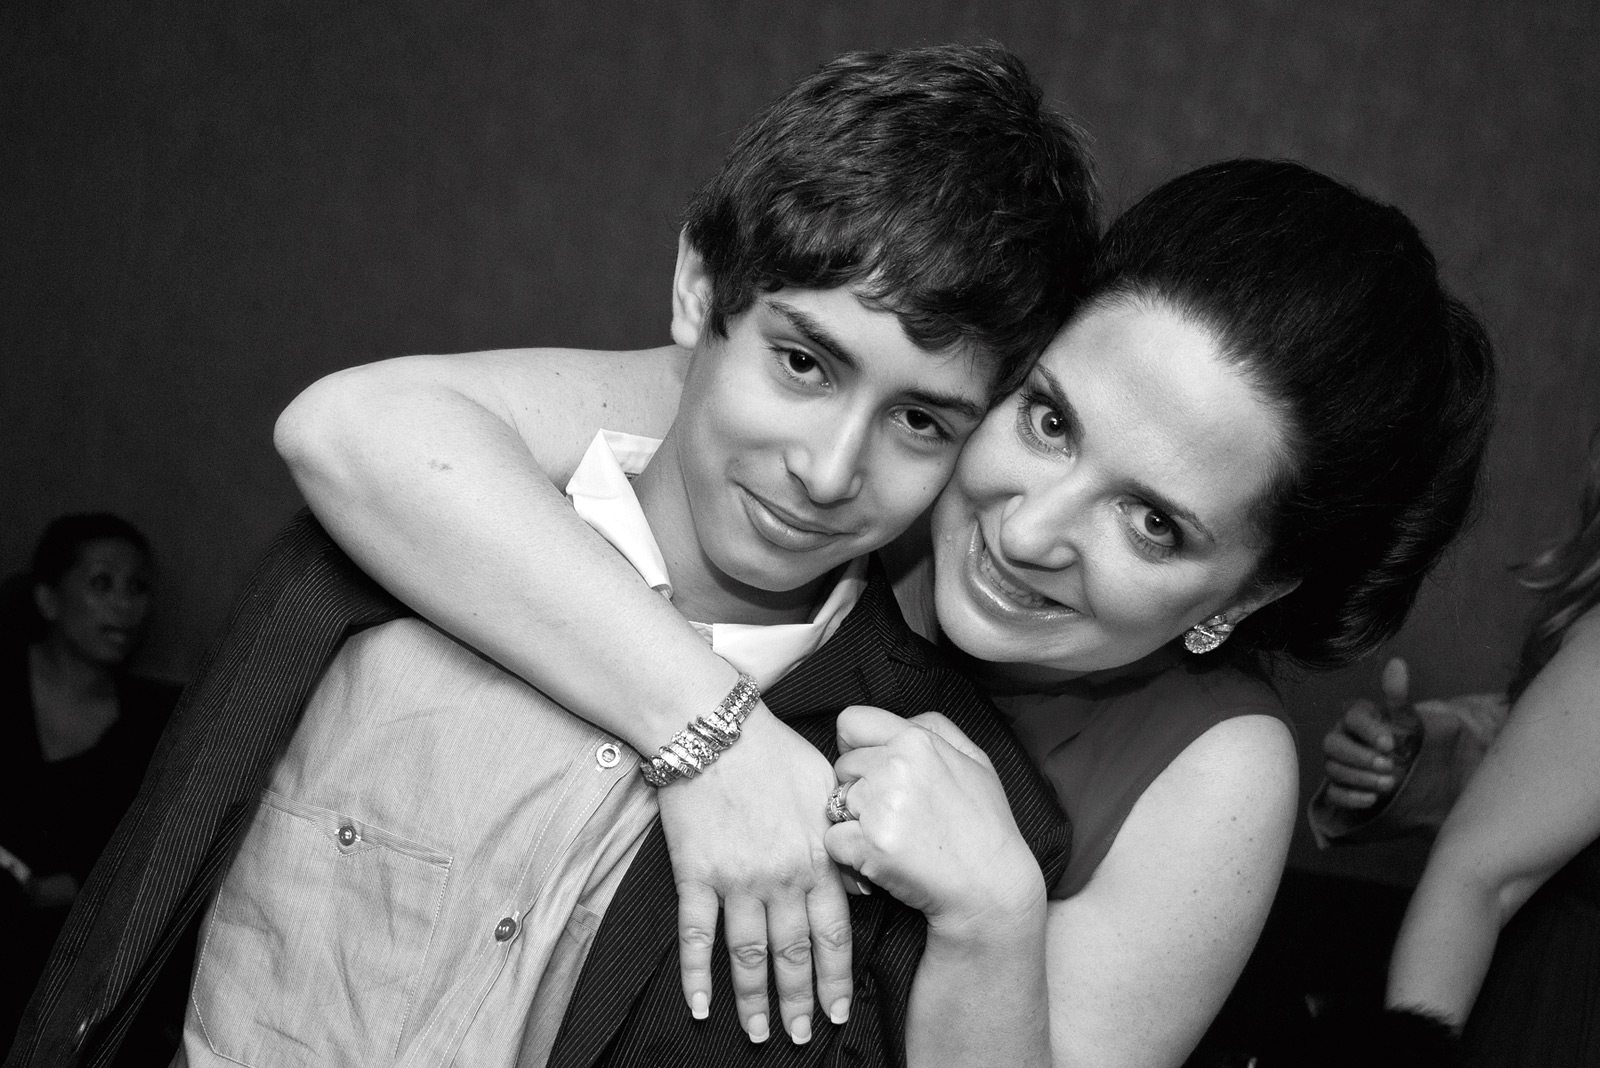 London Barmitzvah Photography & Videography 010